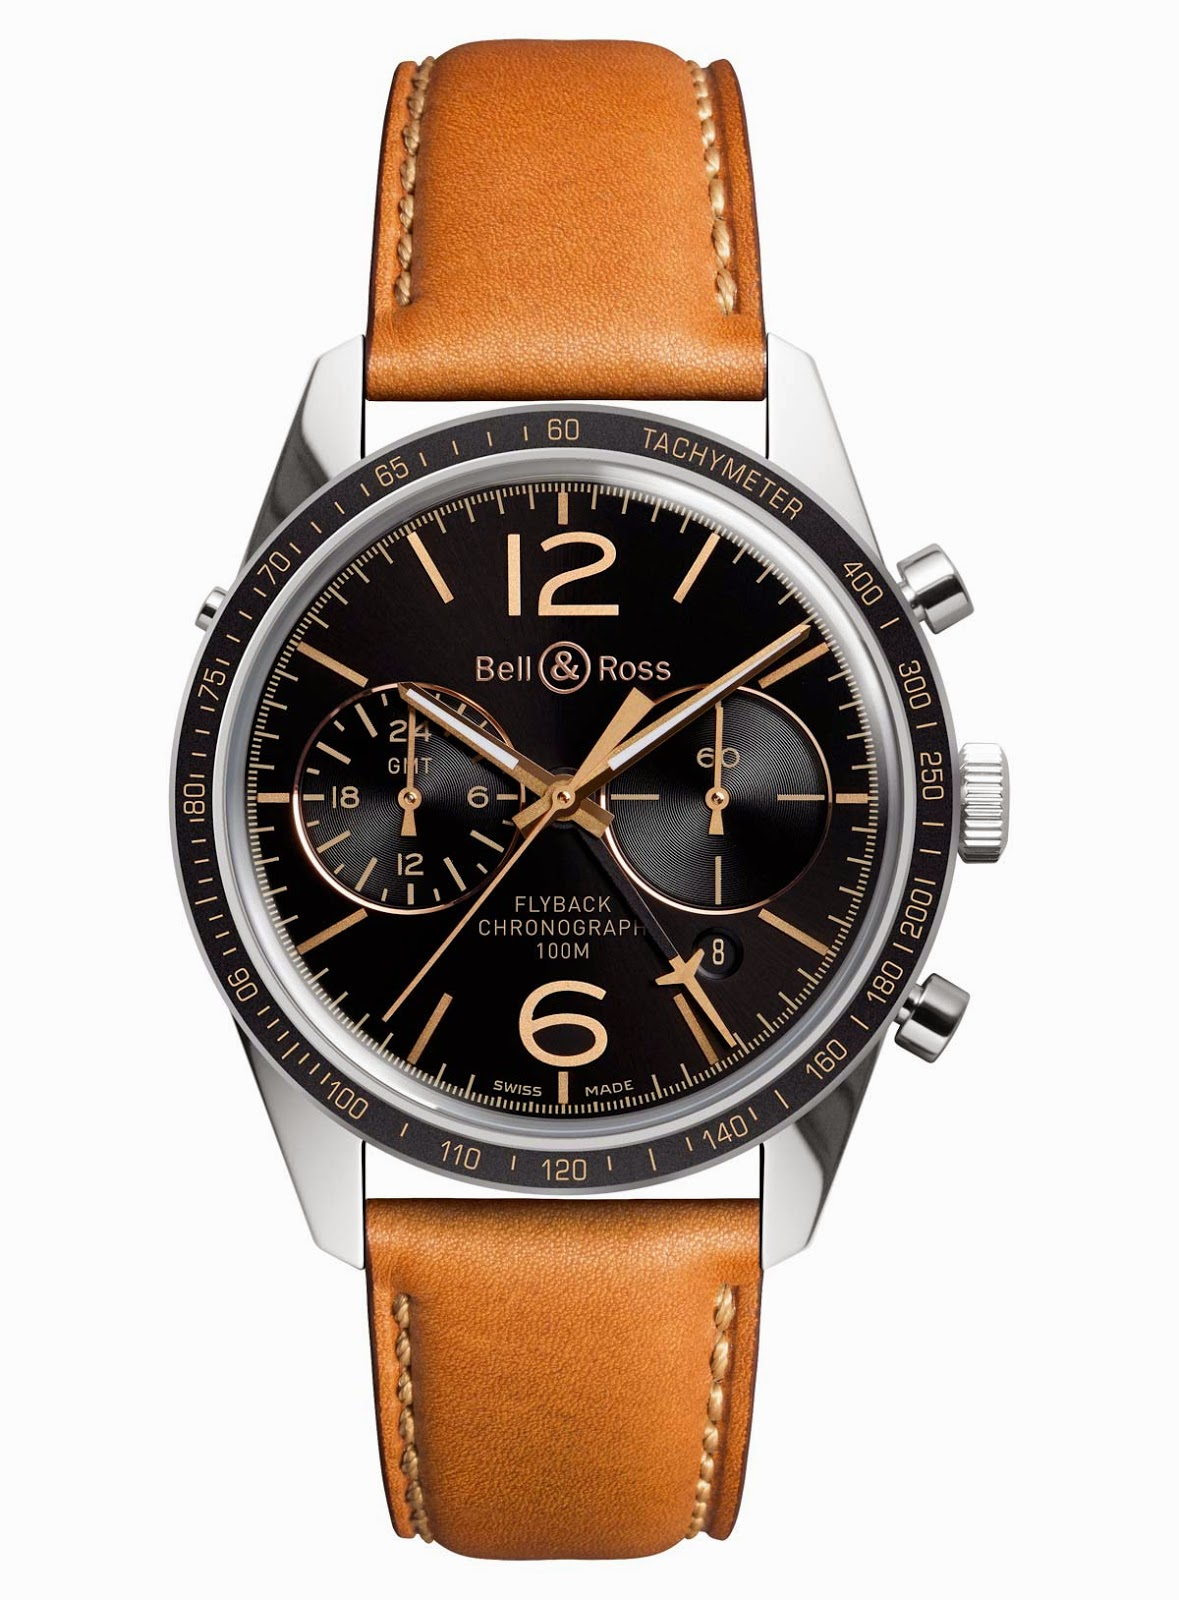 Bell & Ross - BR 126 Sport Heritage GMT & Flyback Bell%26Ross-Vintage-BR-126-Heritage-GMT-Flyback